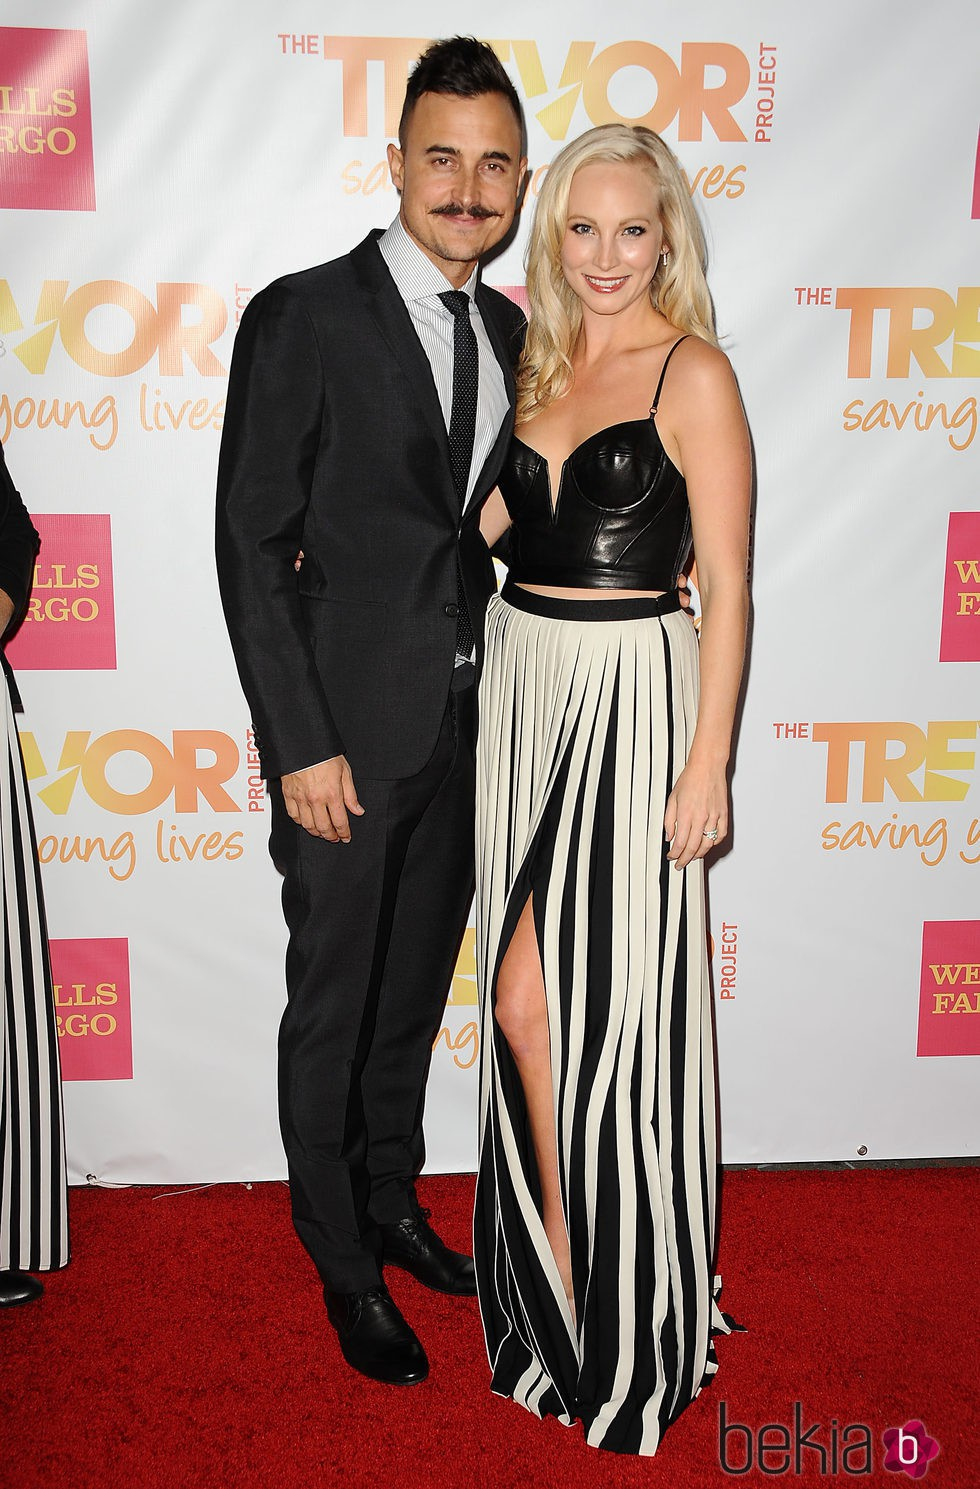 Candice Accola y Joe King en la Gala Trevor 2014 de Los Angeles